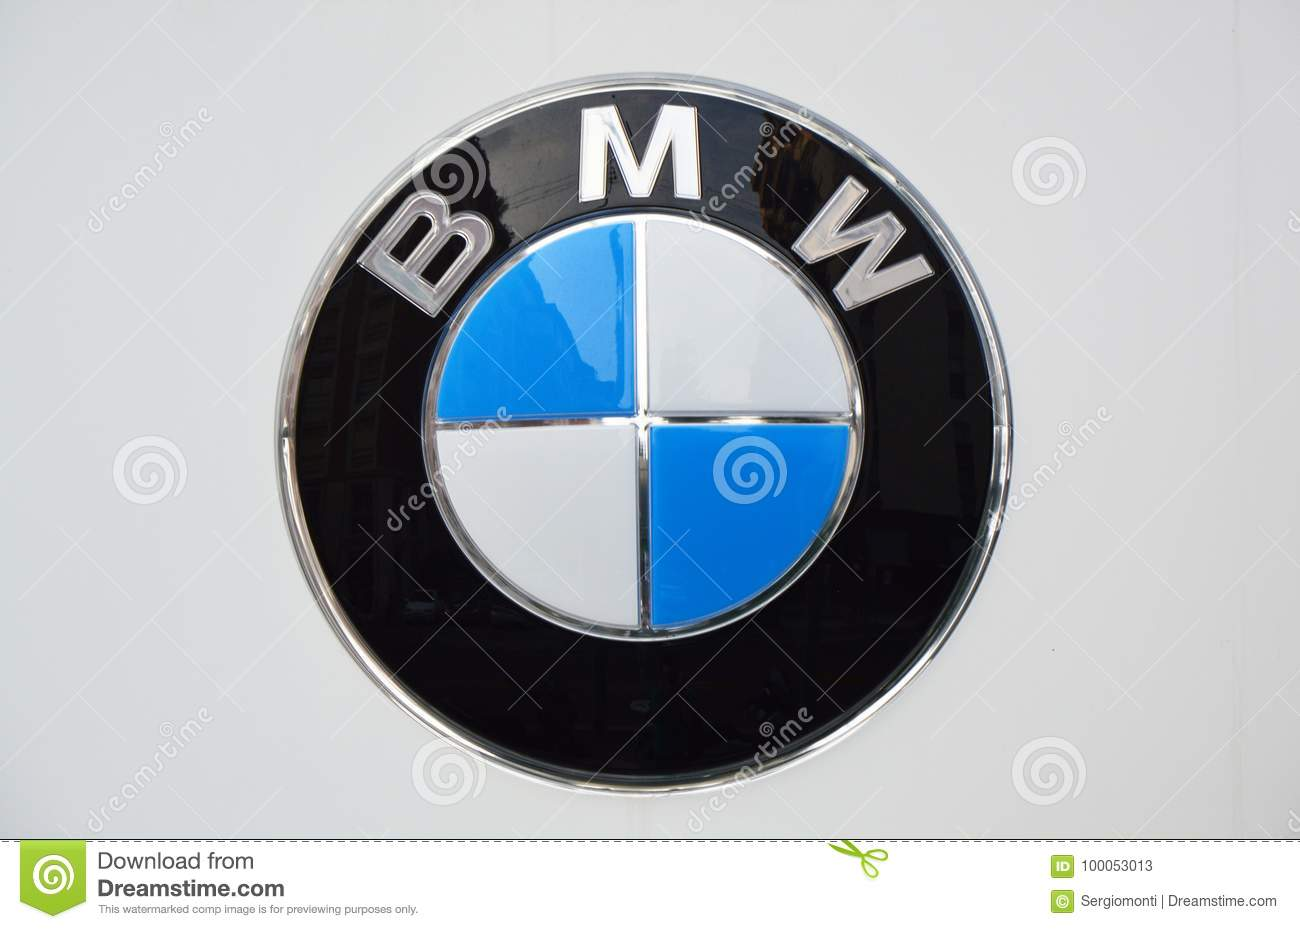 MILAN, ITALY - SEPTEMBER 7, 2017: BMW logo, BMW is a German luxury vehicle, sports car, motorcycle, and engine manufacturing compa